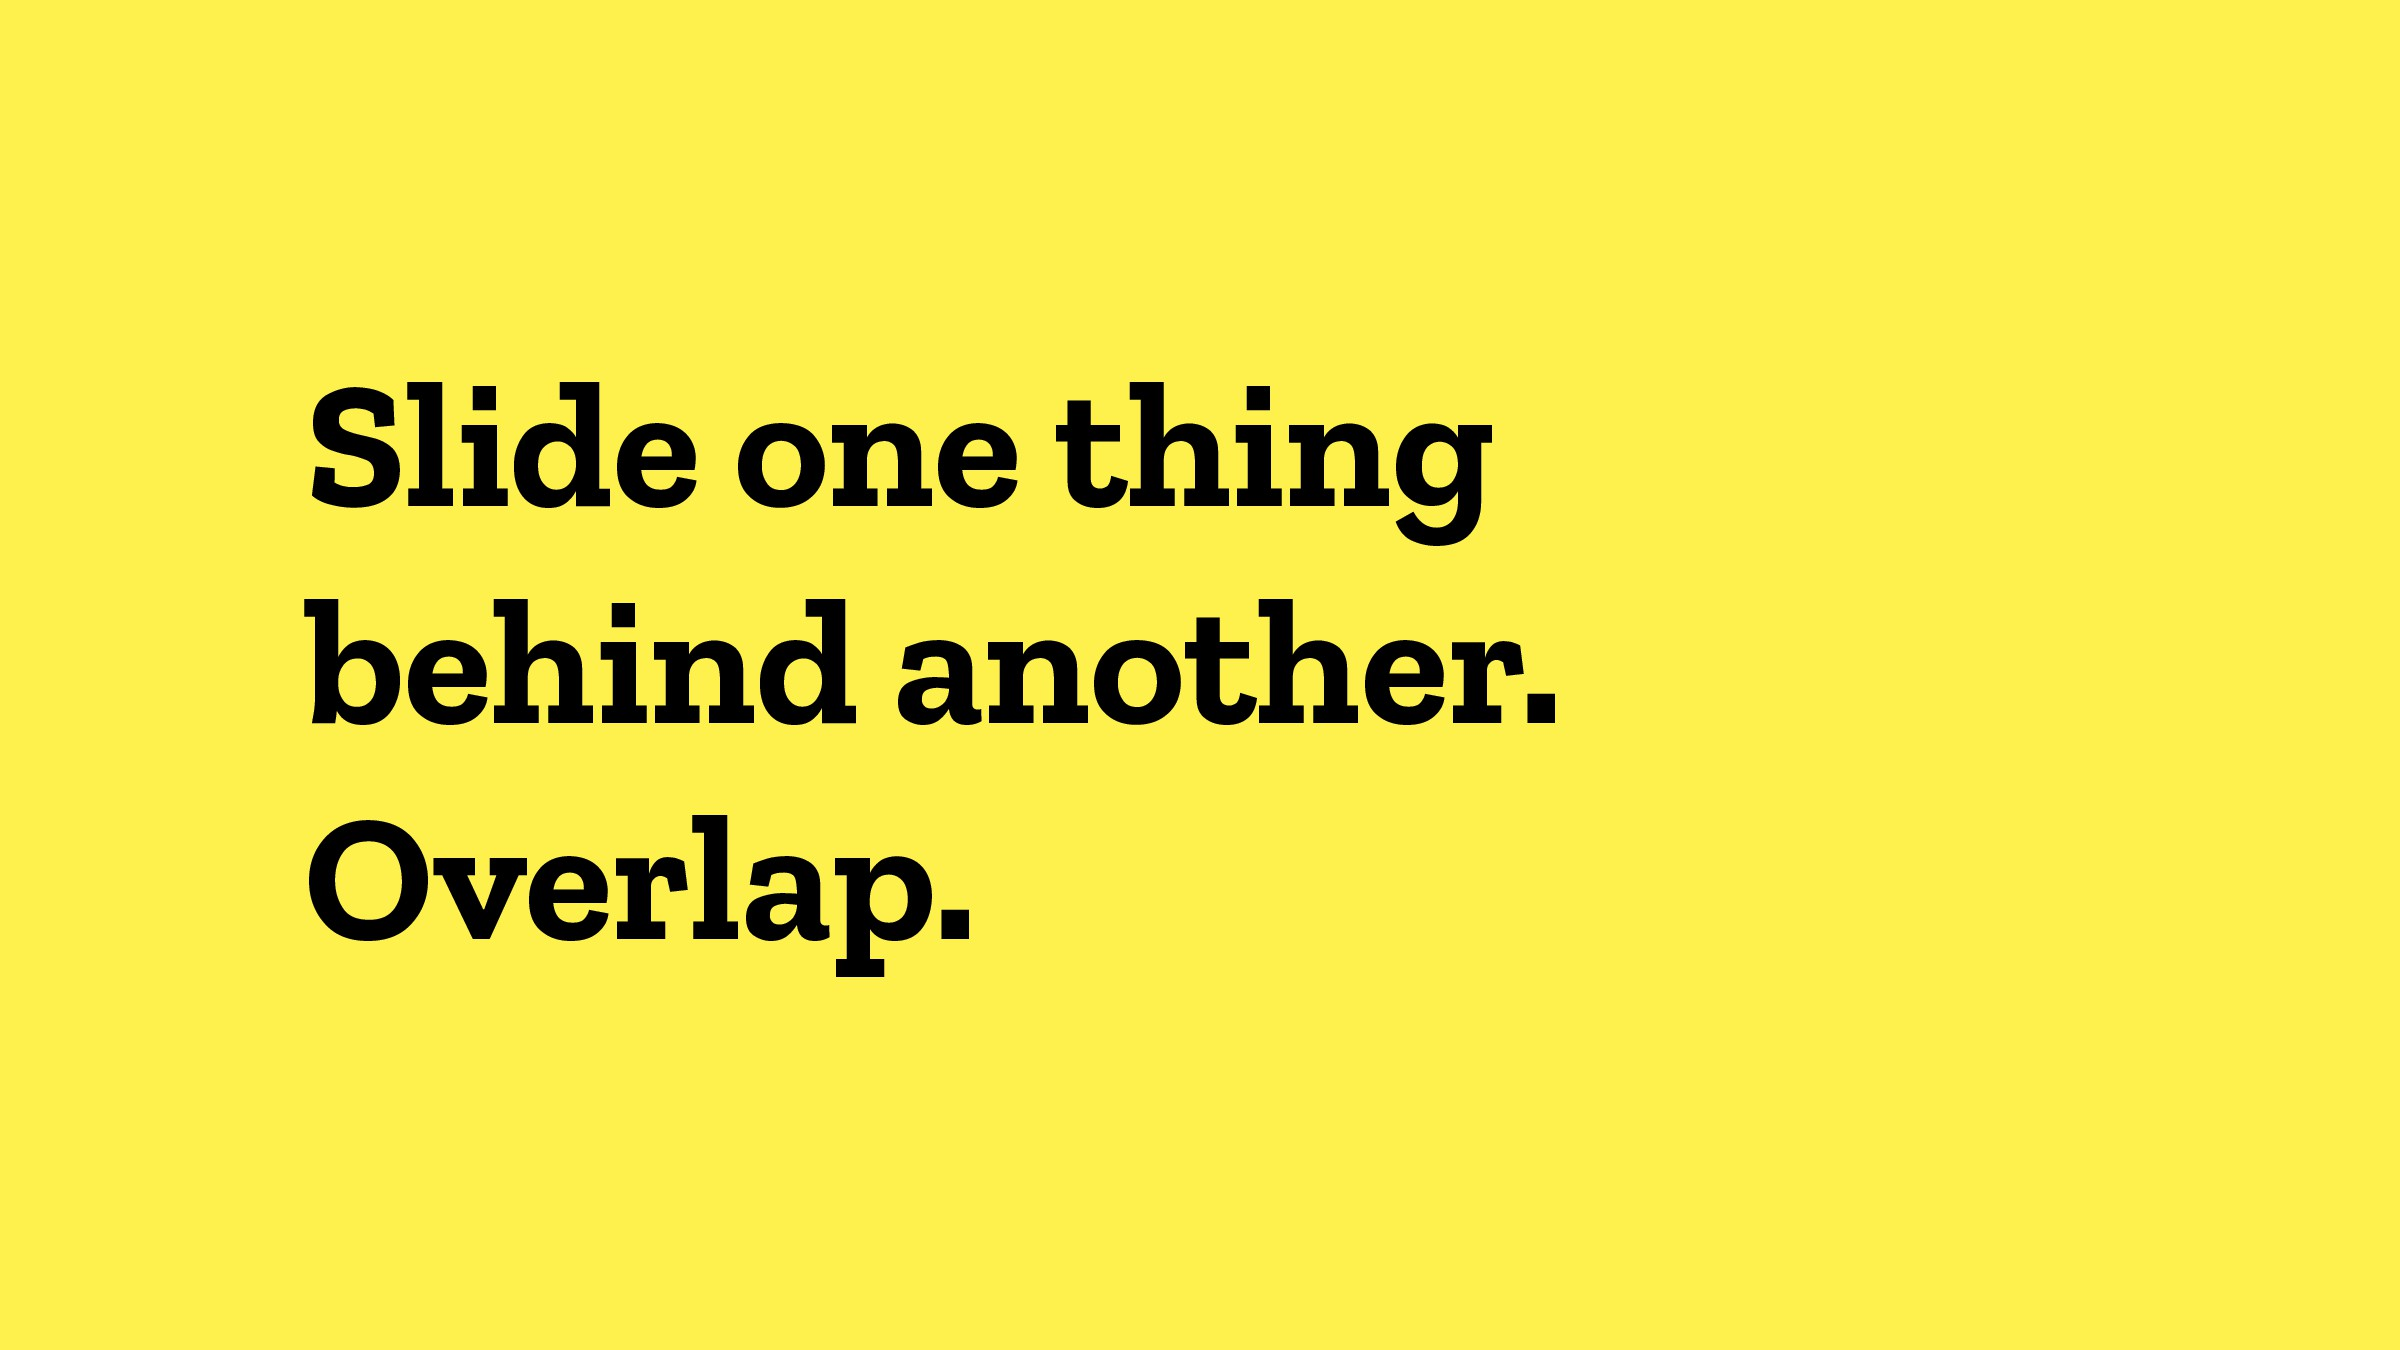 Slide one thing behind another. Overlap.